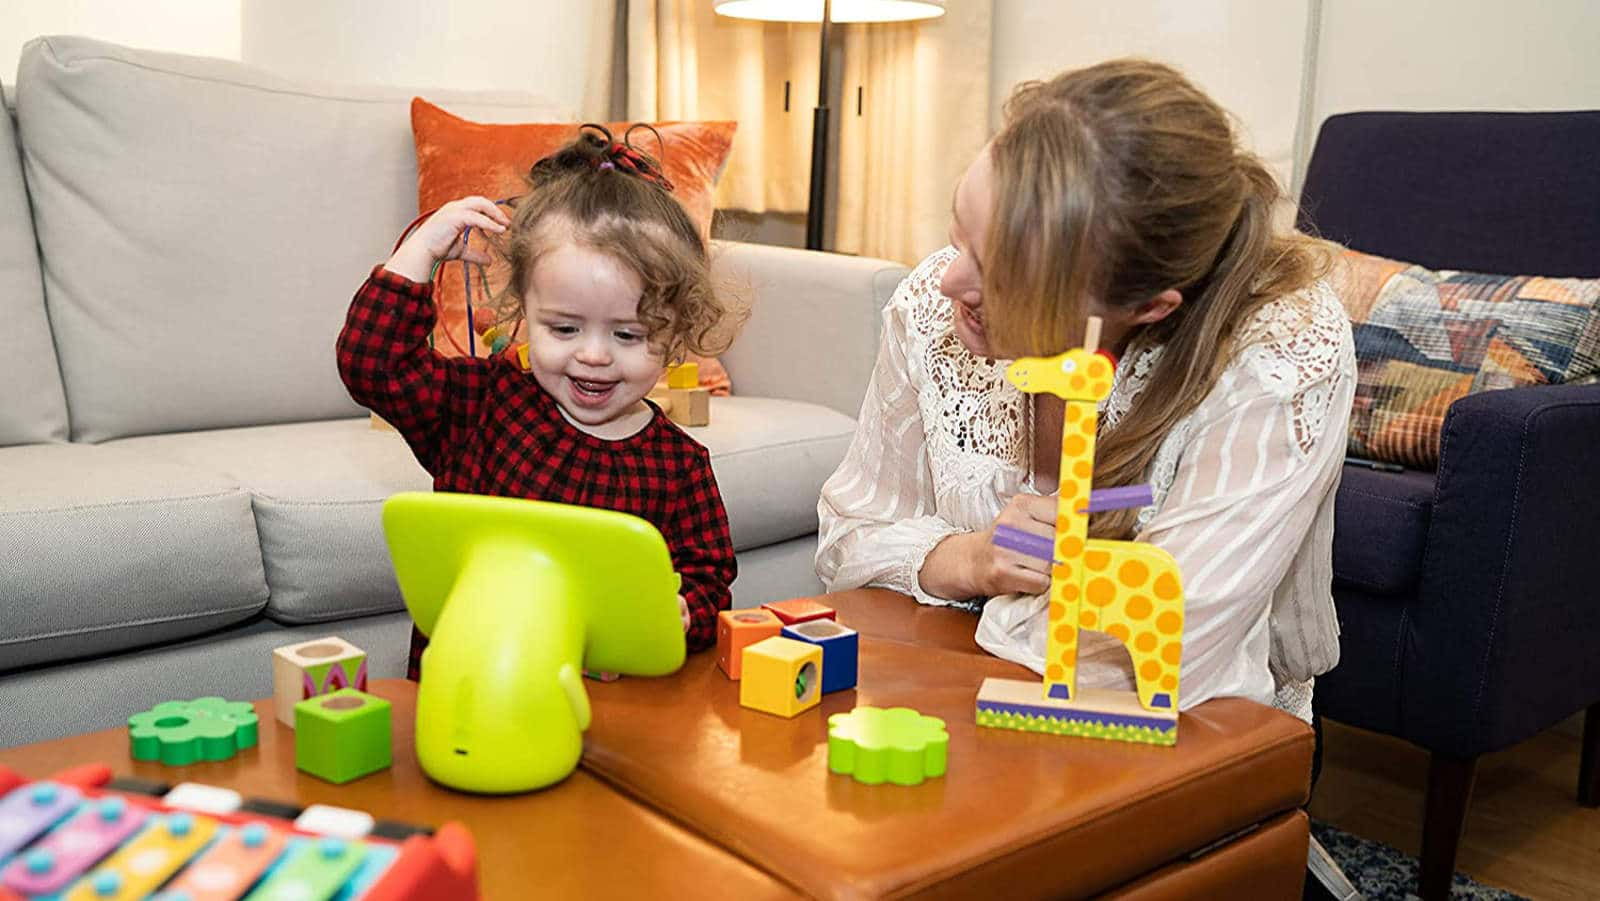 aila sit and play tablet for kids